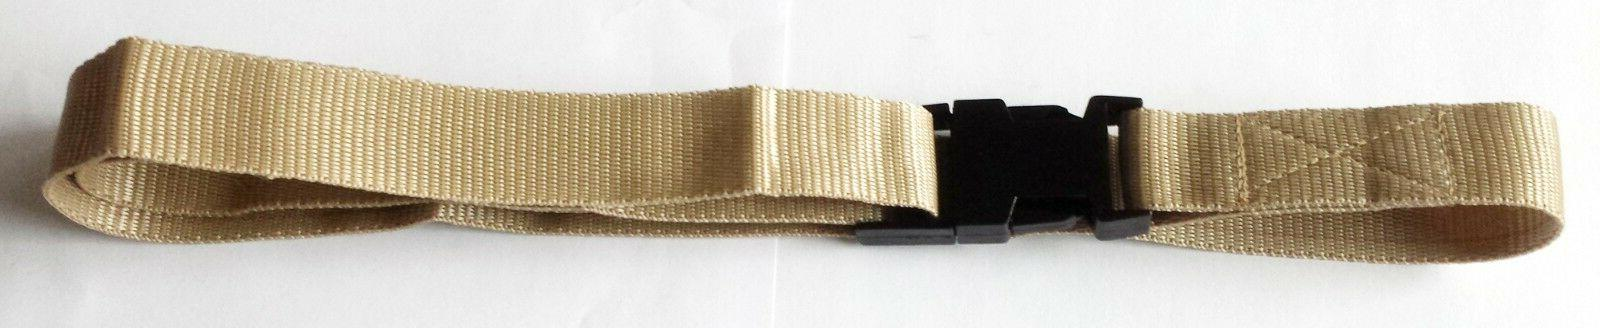 25mm Adjustable Belt any Release,